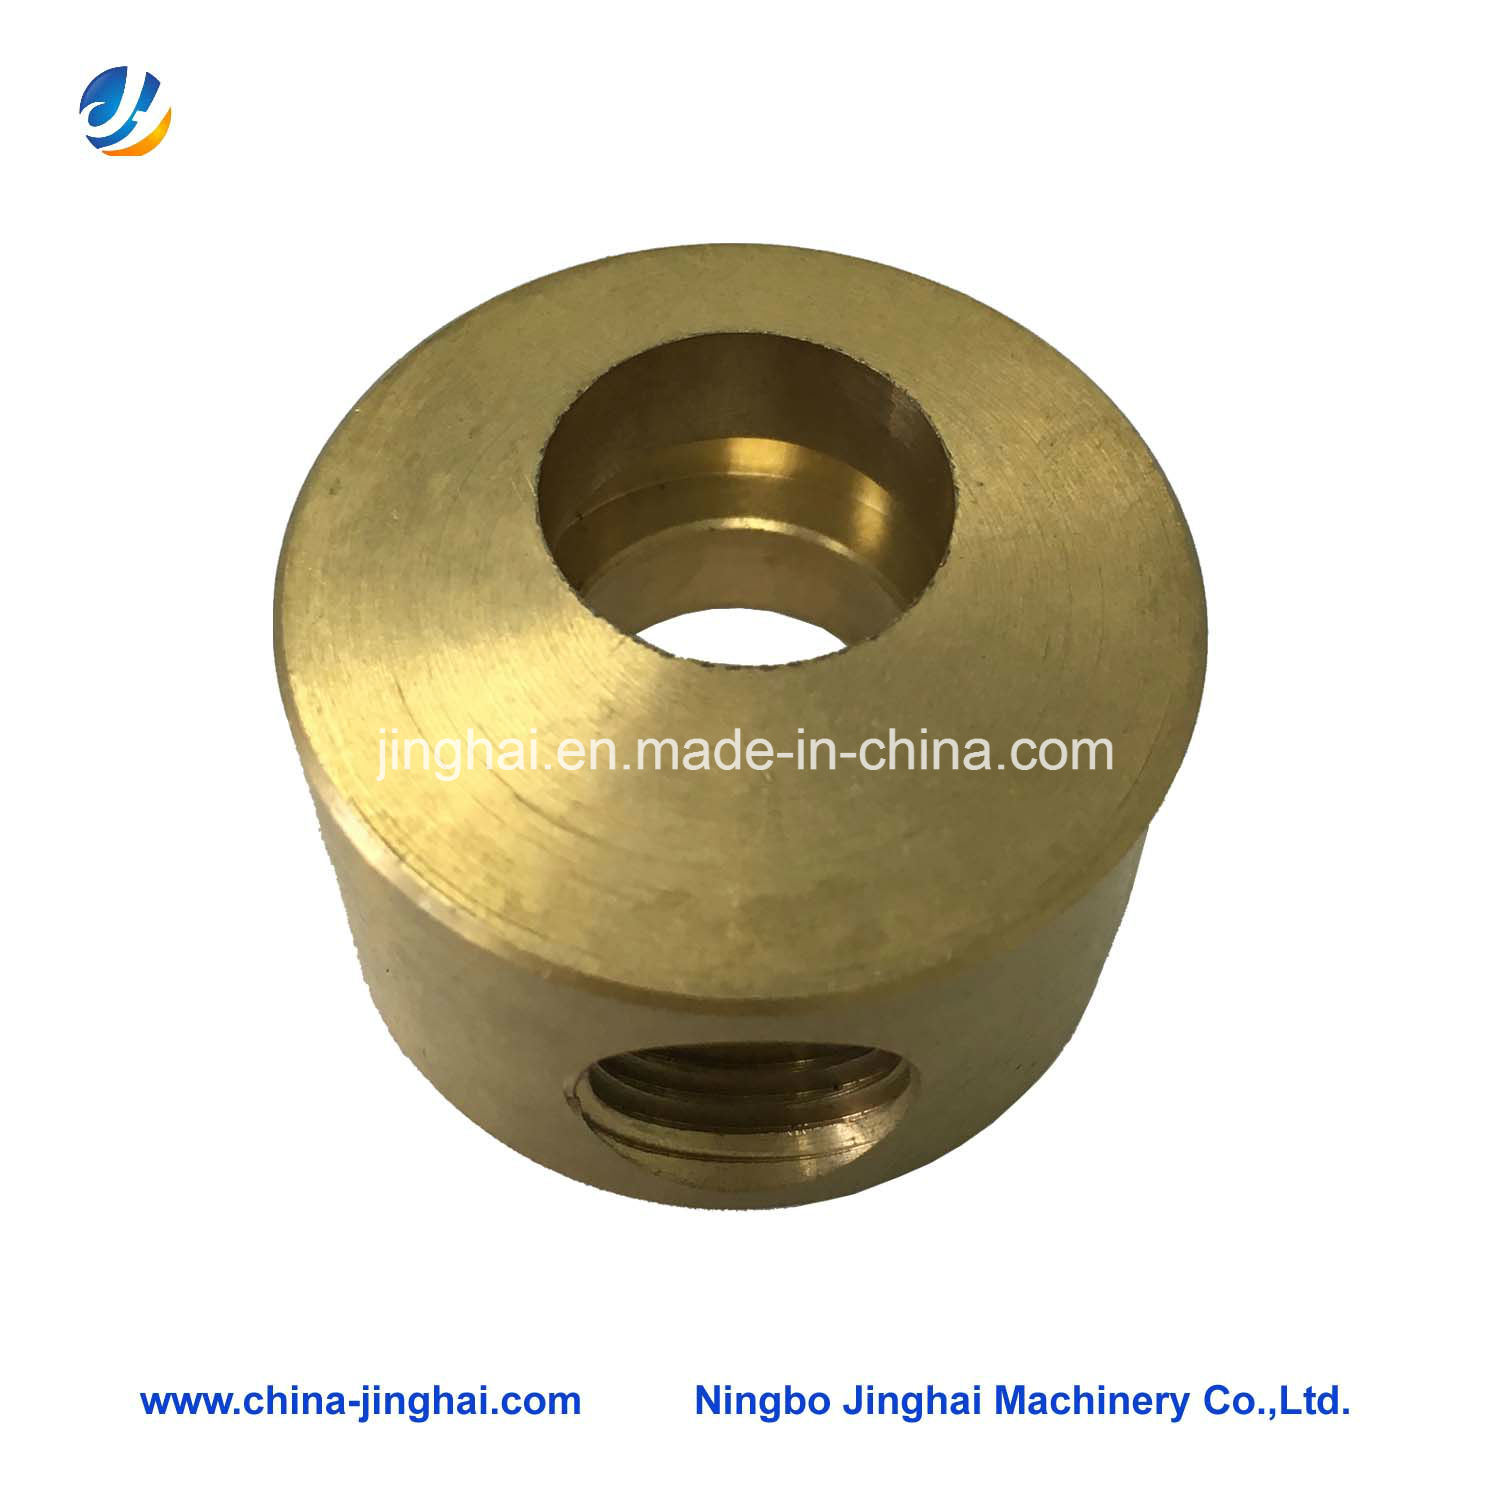 OEM Precision Stainless Steel Metal Machining Hardware Components for Mould/Lock pictures & photos